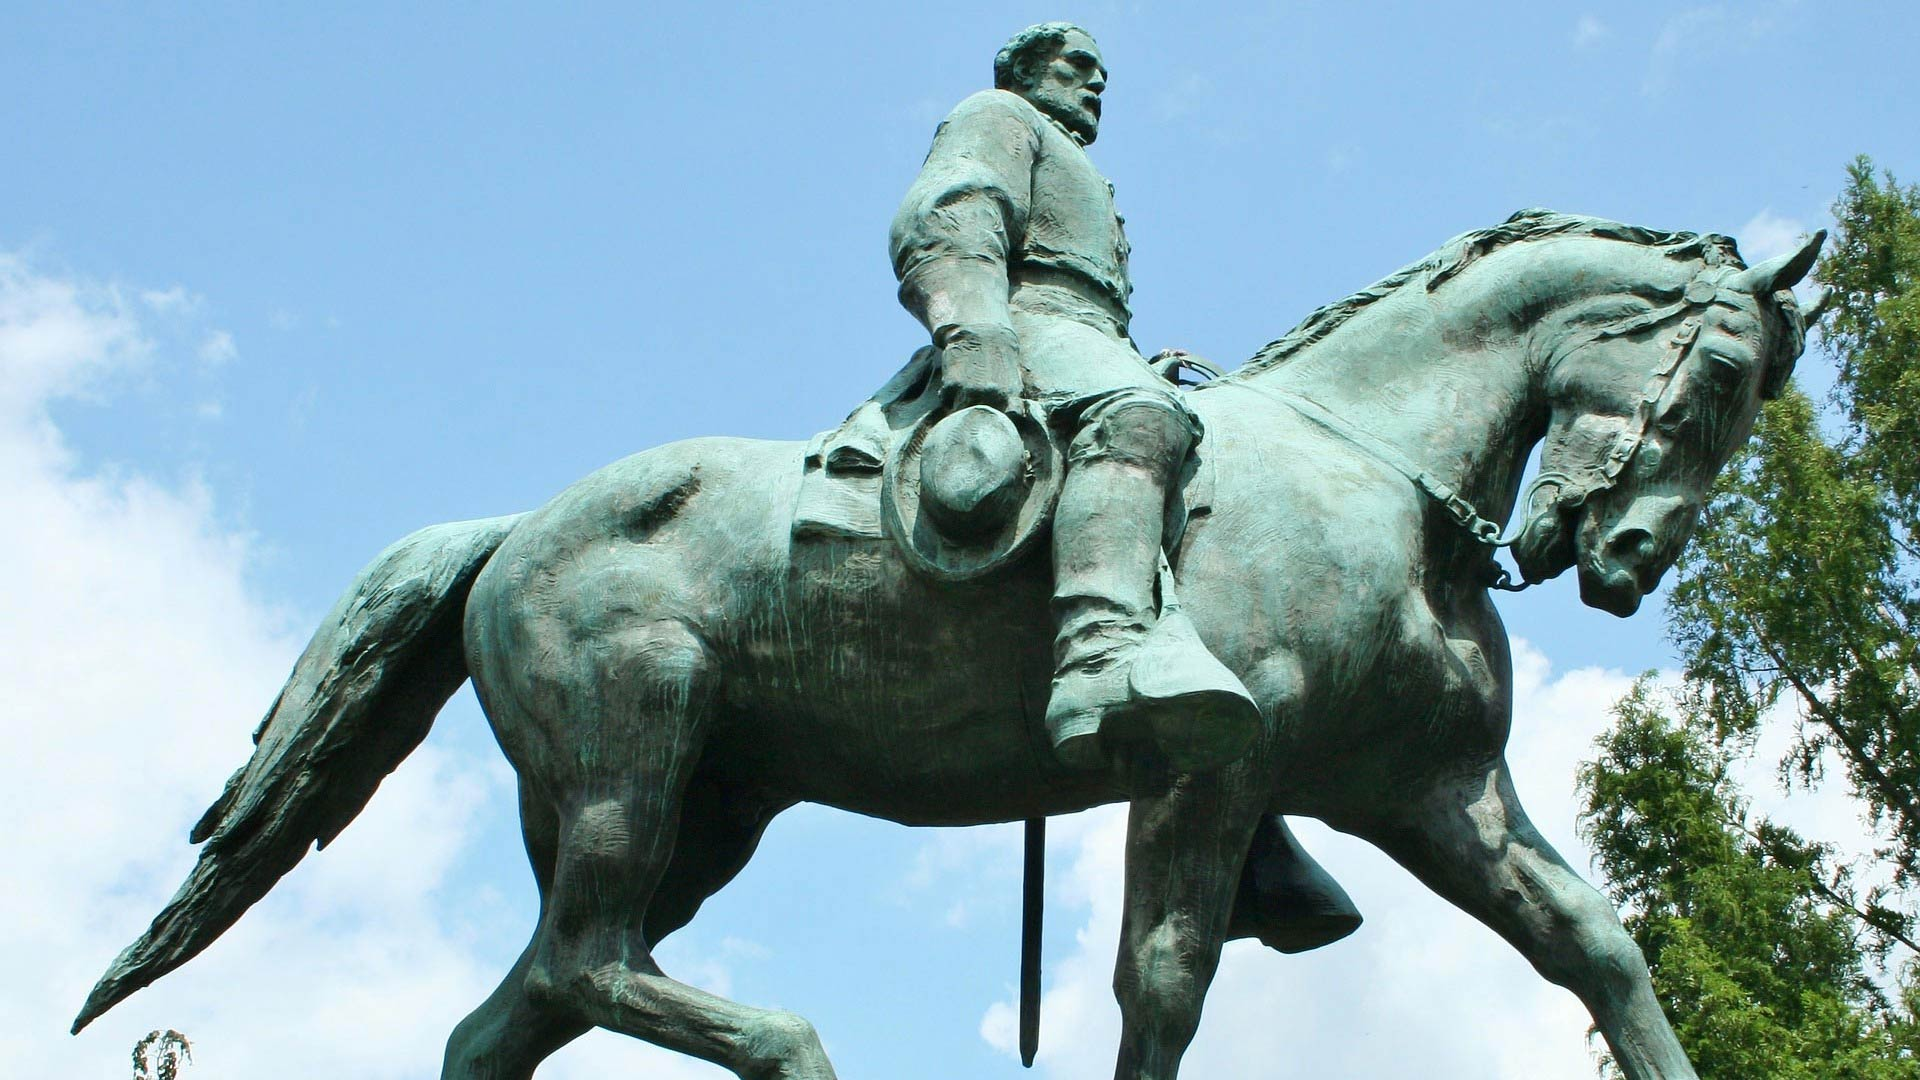 A statue of Robert E. Lee.